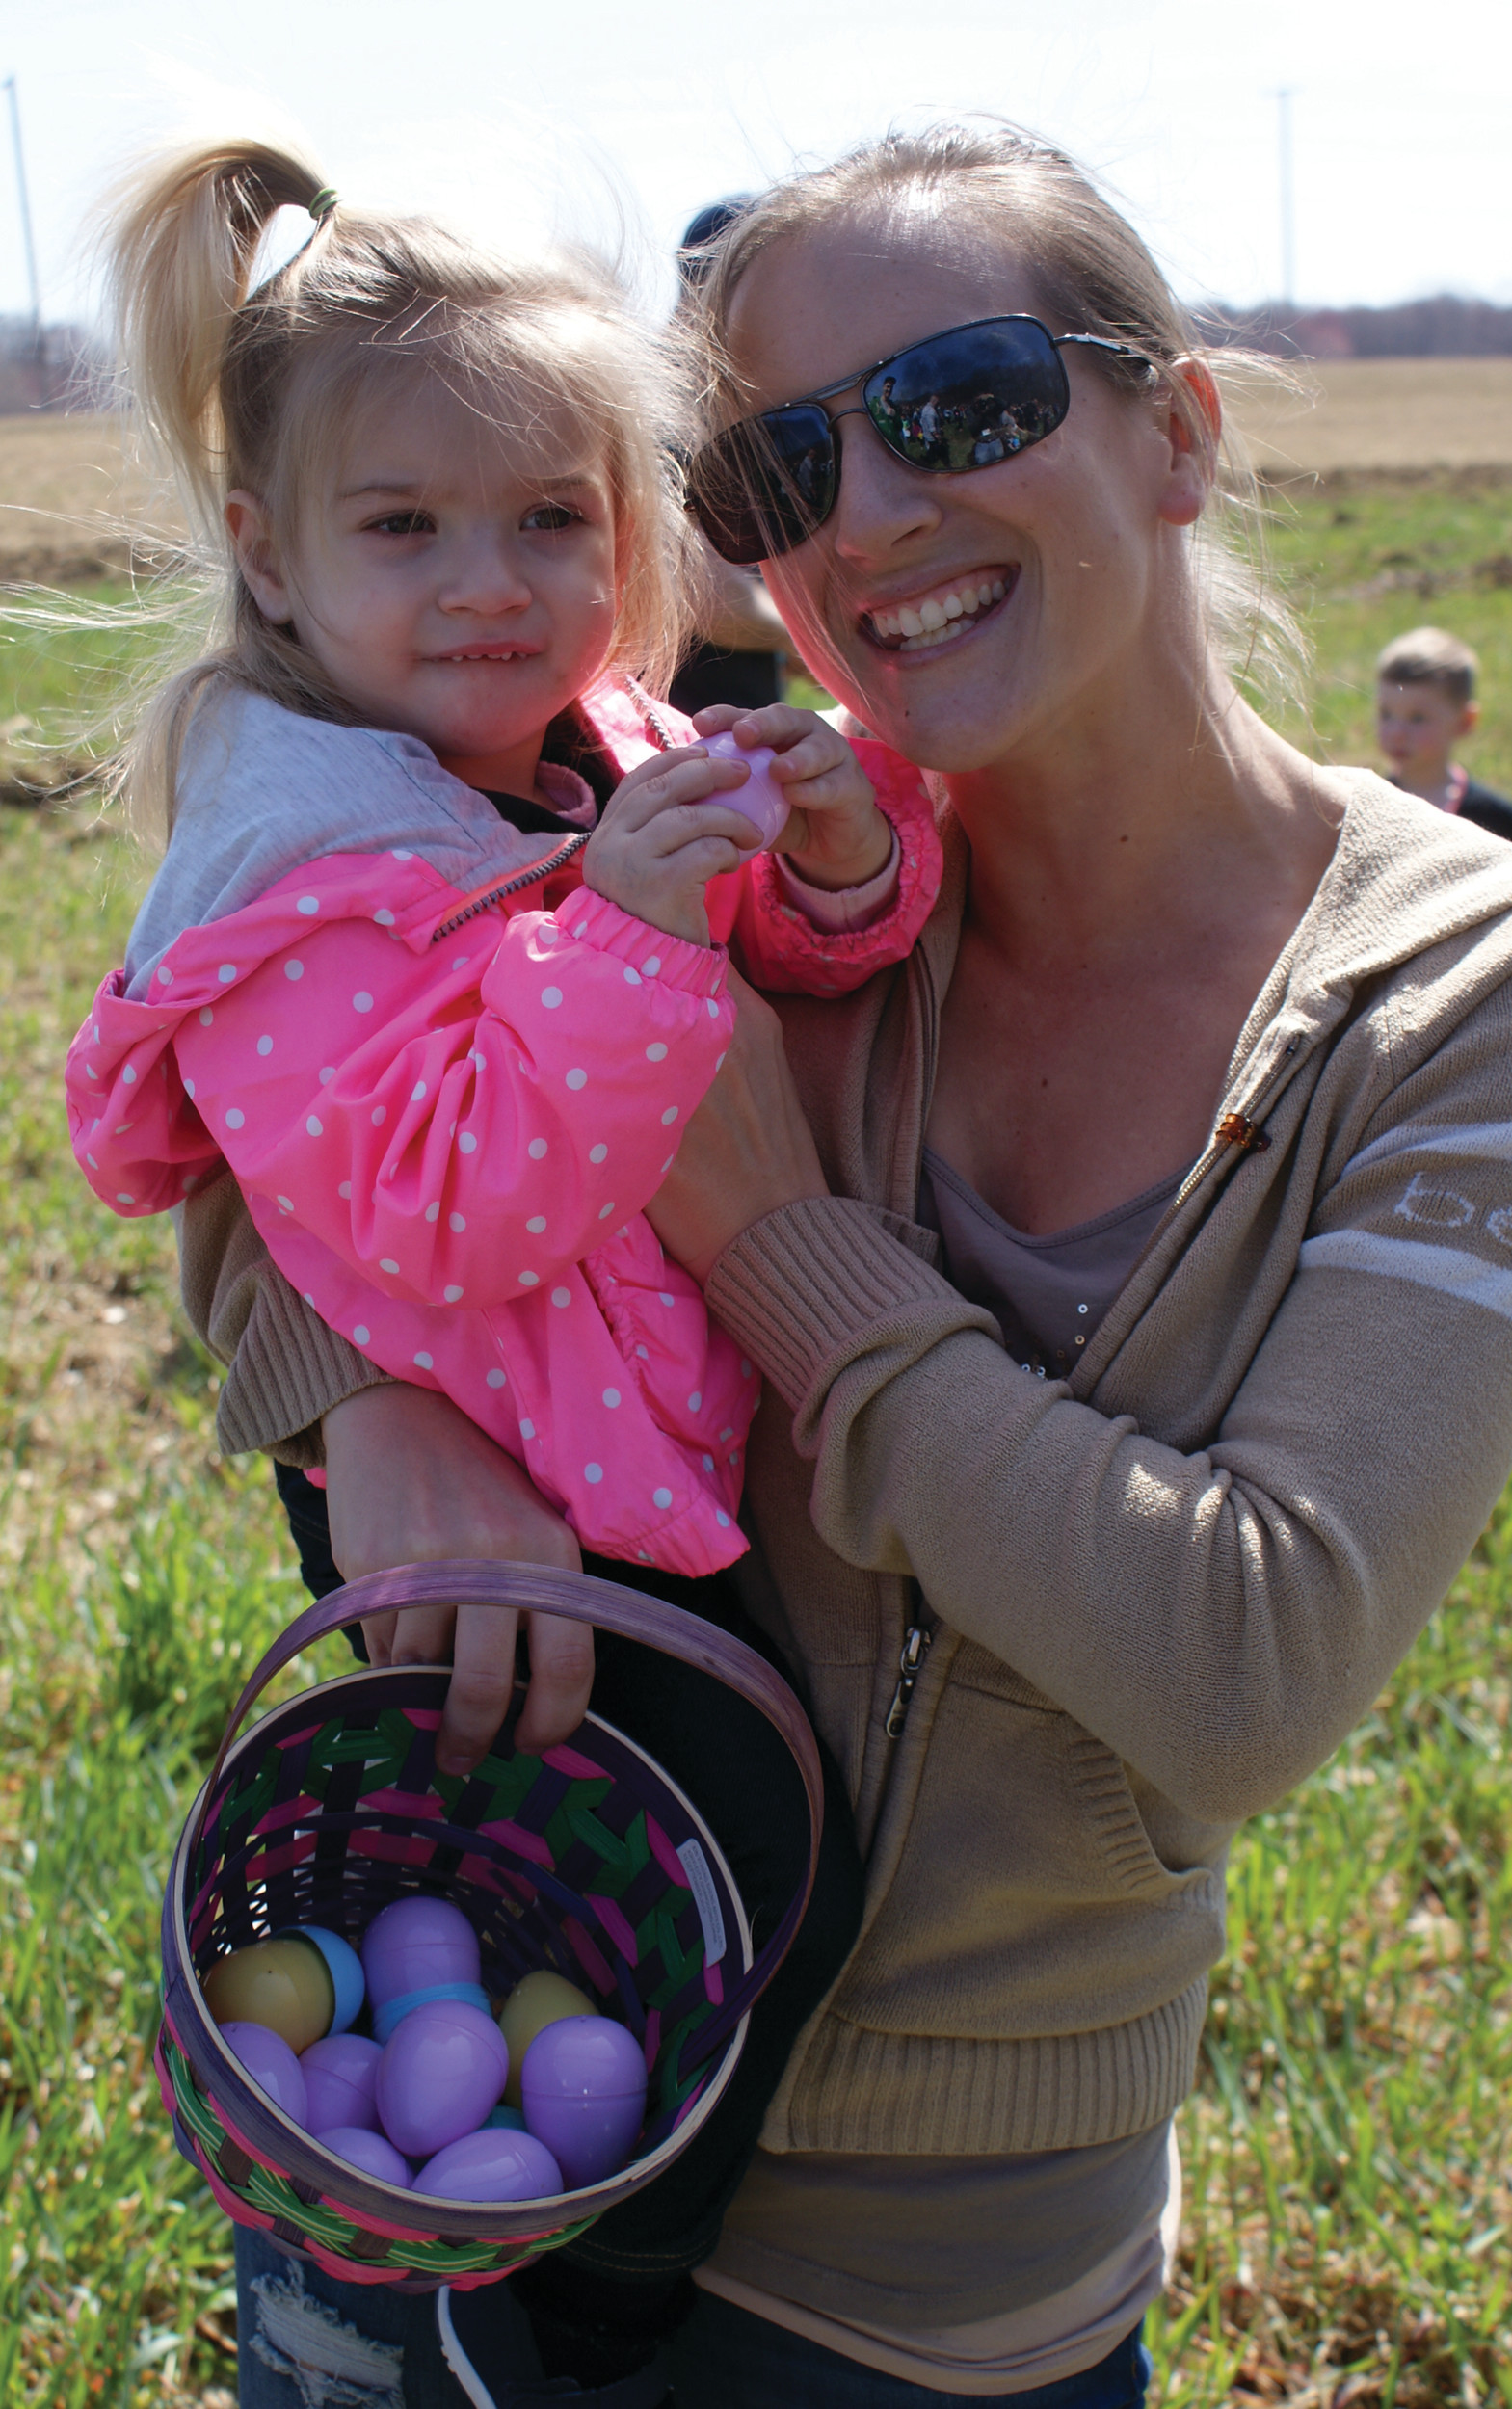 MOMMY AND ME: Young Kinslee Anderson, age 2, of Cranston shows off her eggs she collected at the Easter Egg Hunt while being held by her mother, Jessica.